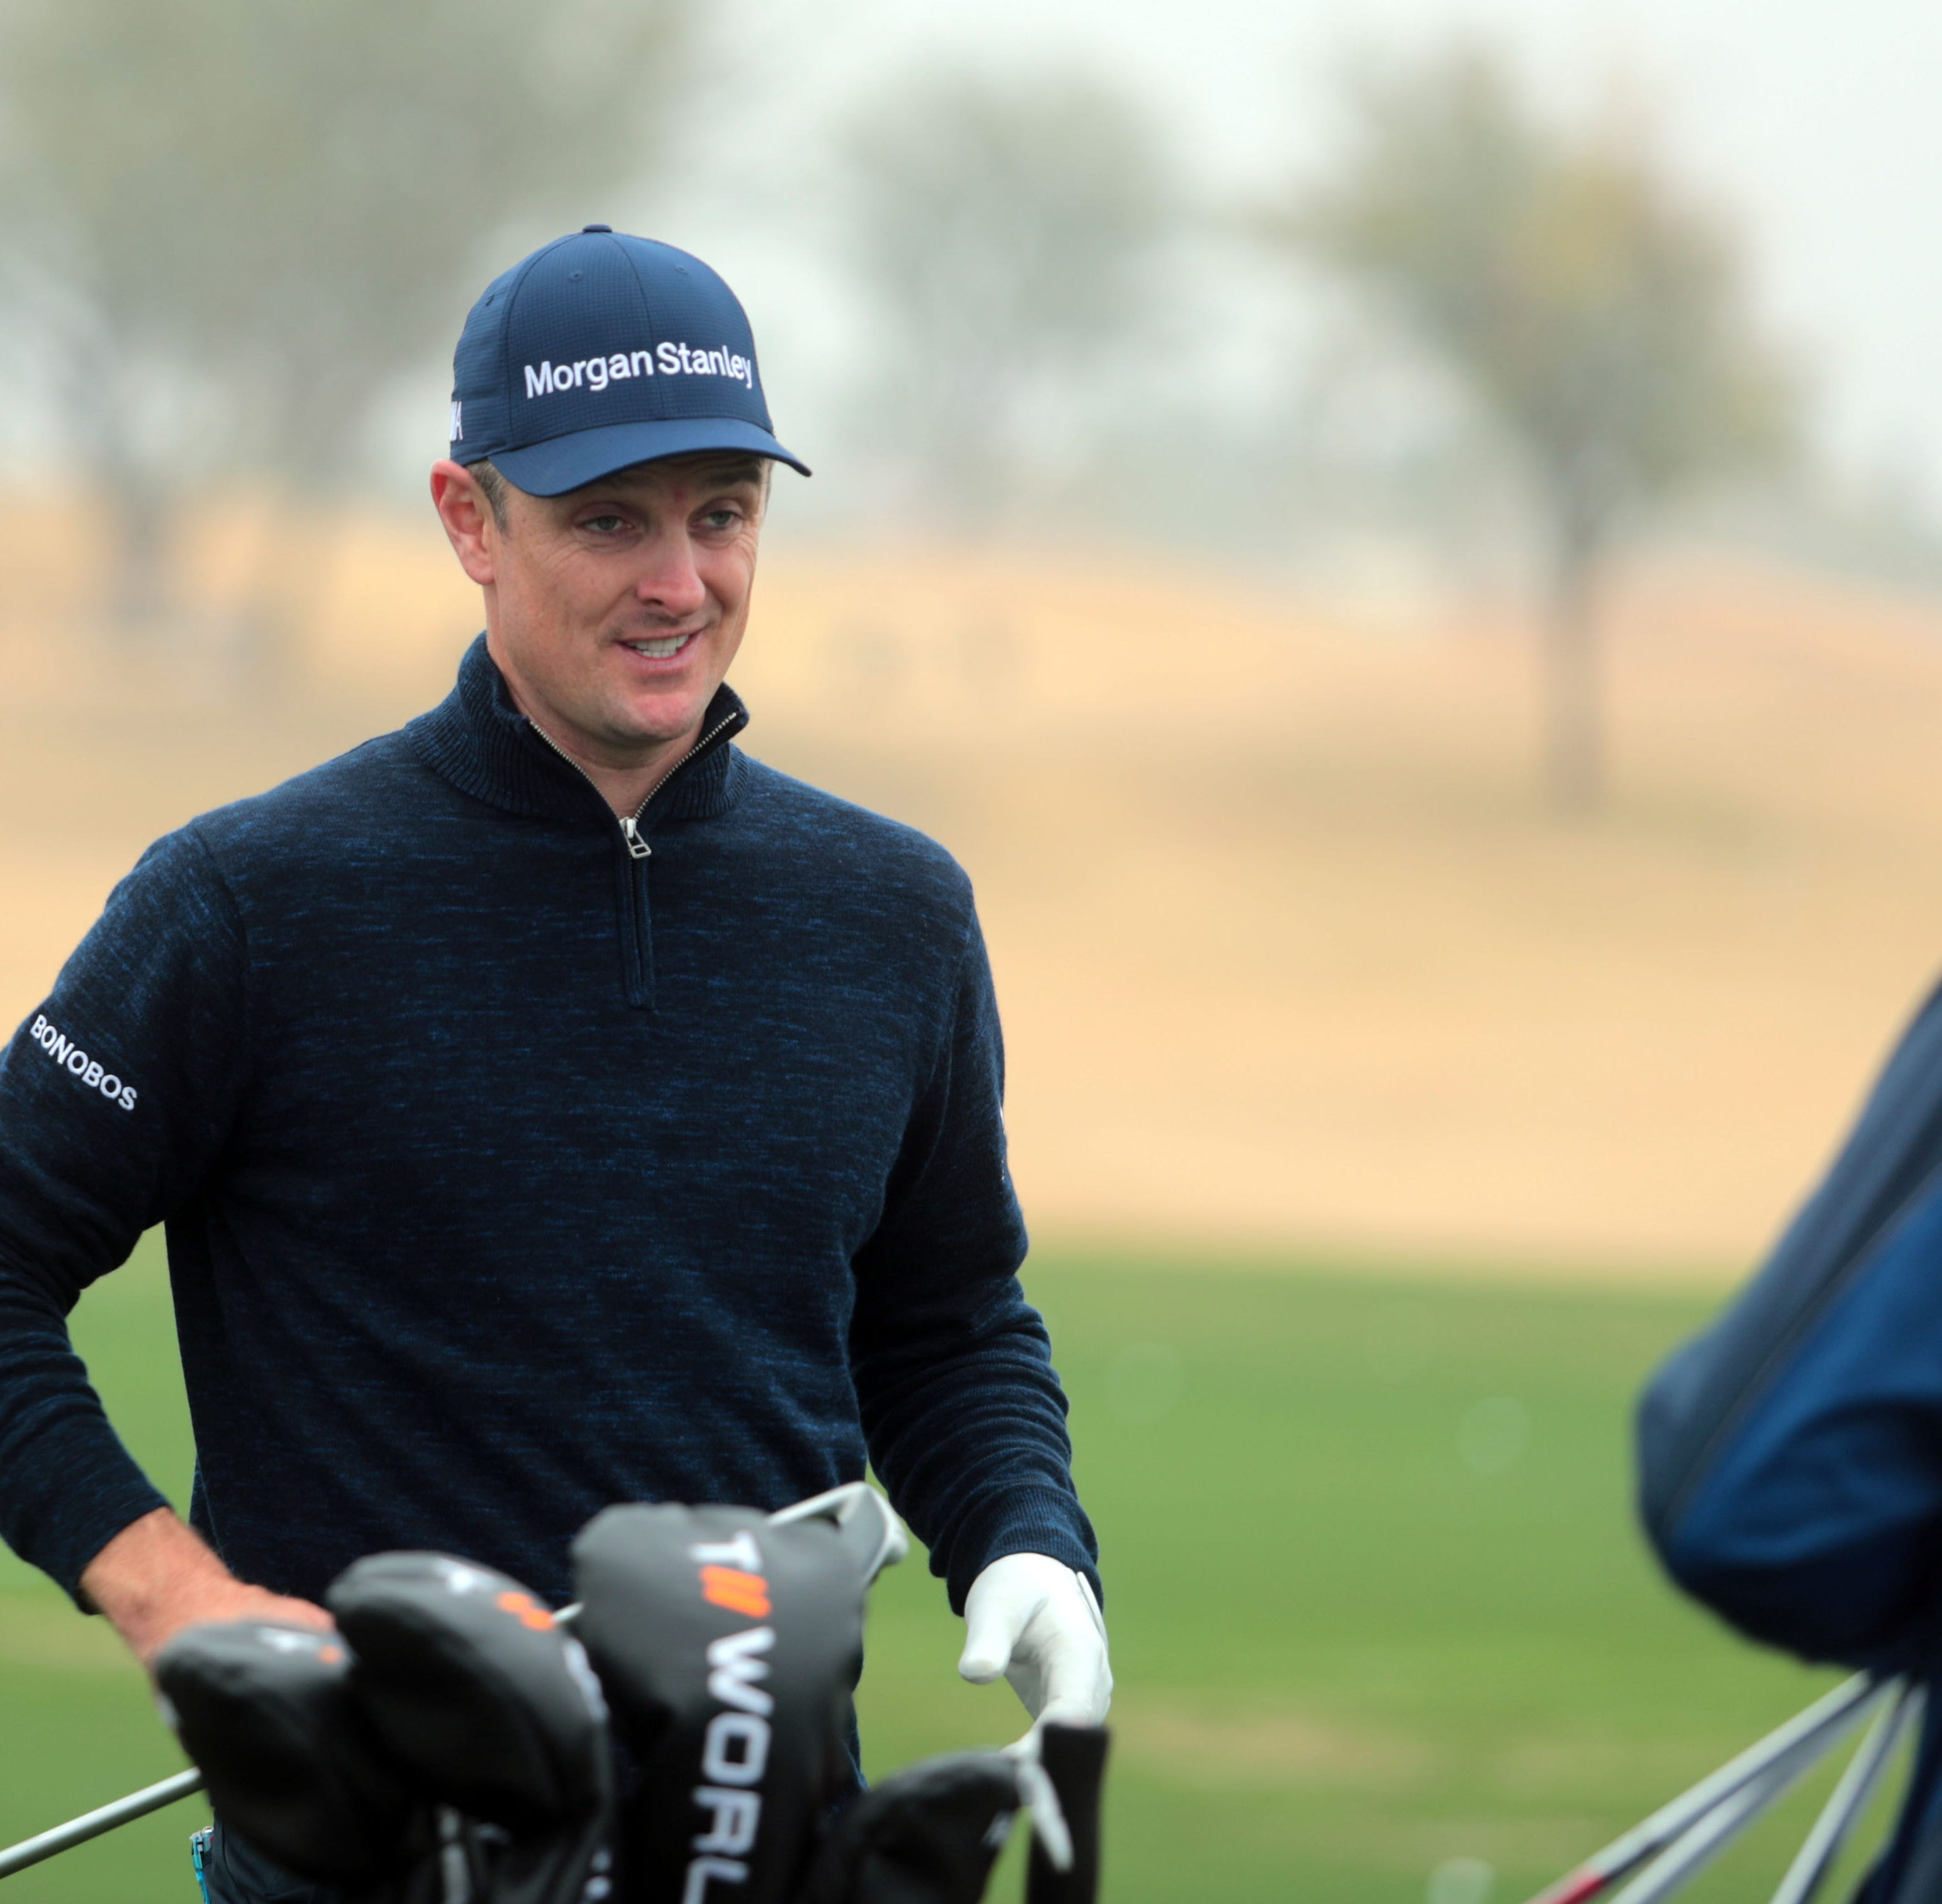 Now that he's reached No. 1 in world, Justin Rose brings new goals  to Desert Classic